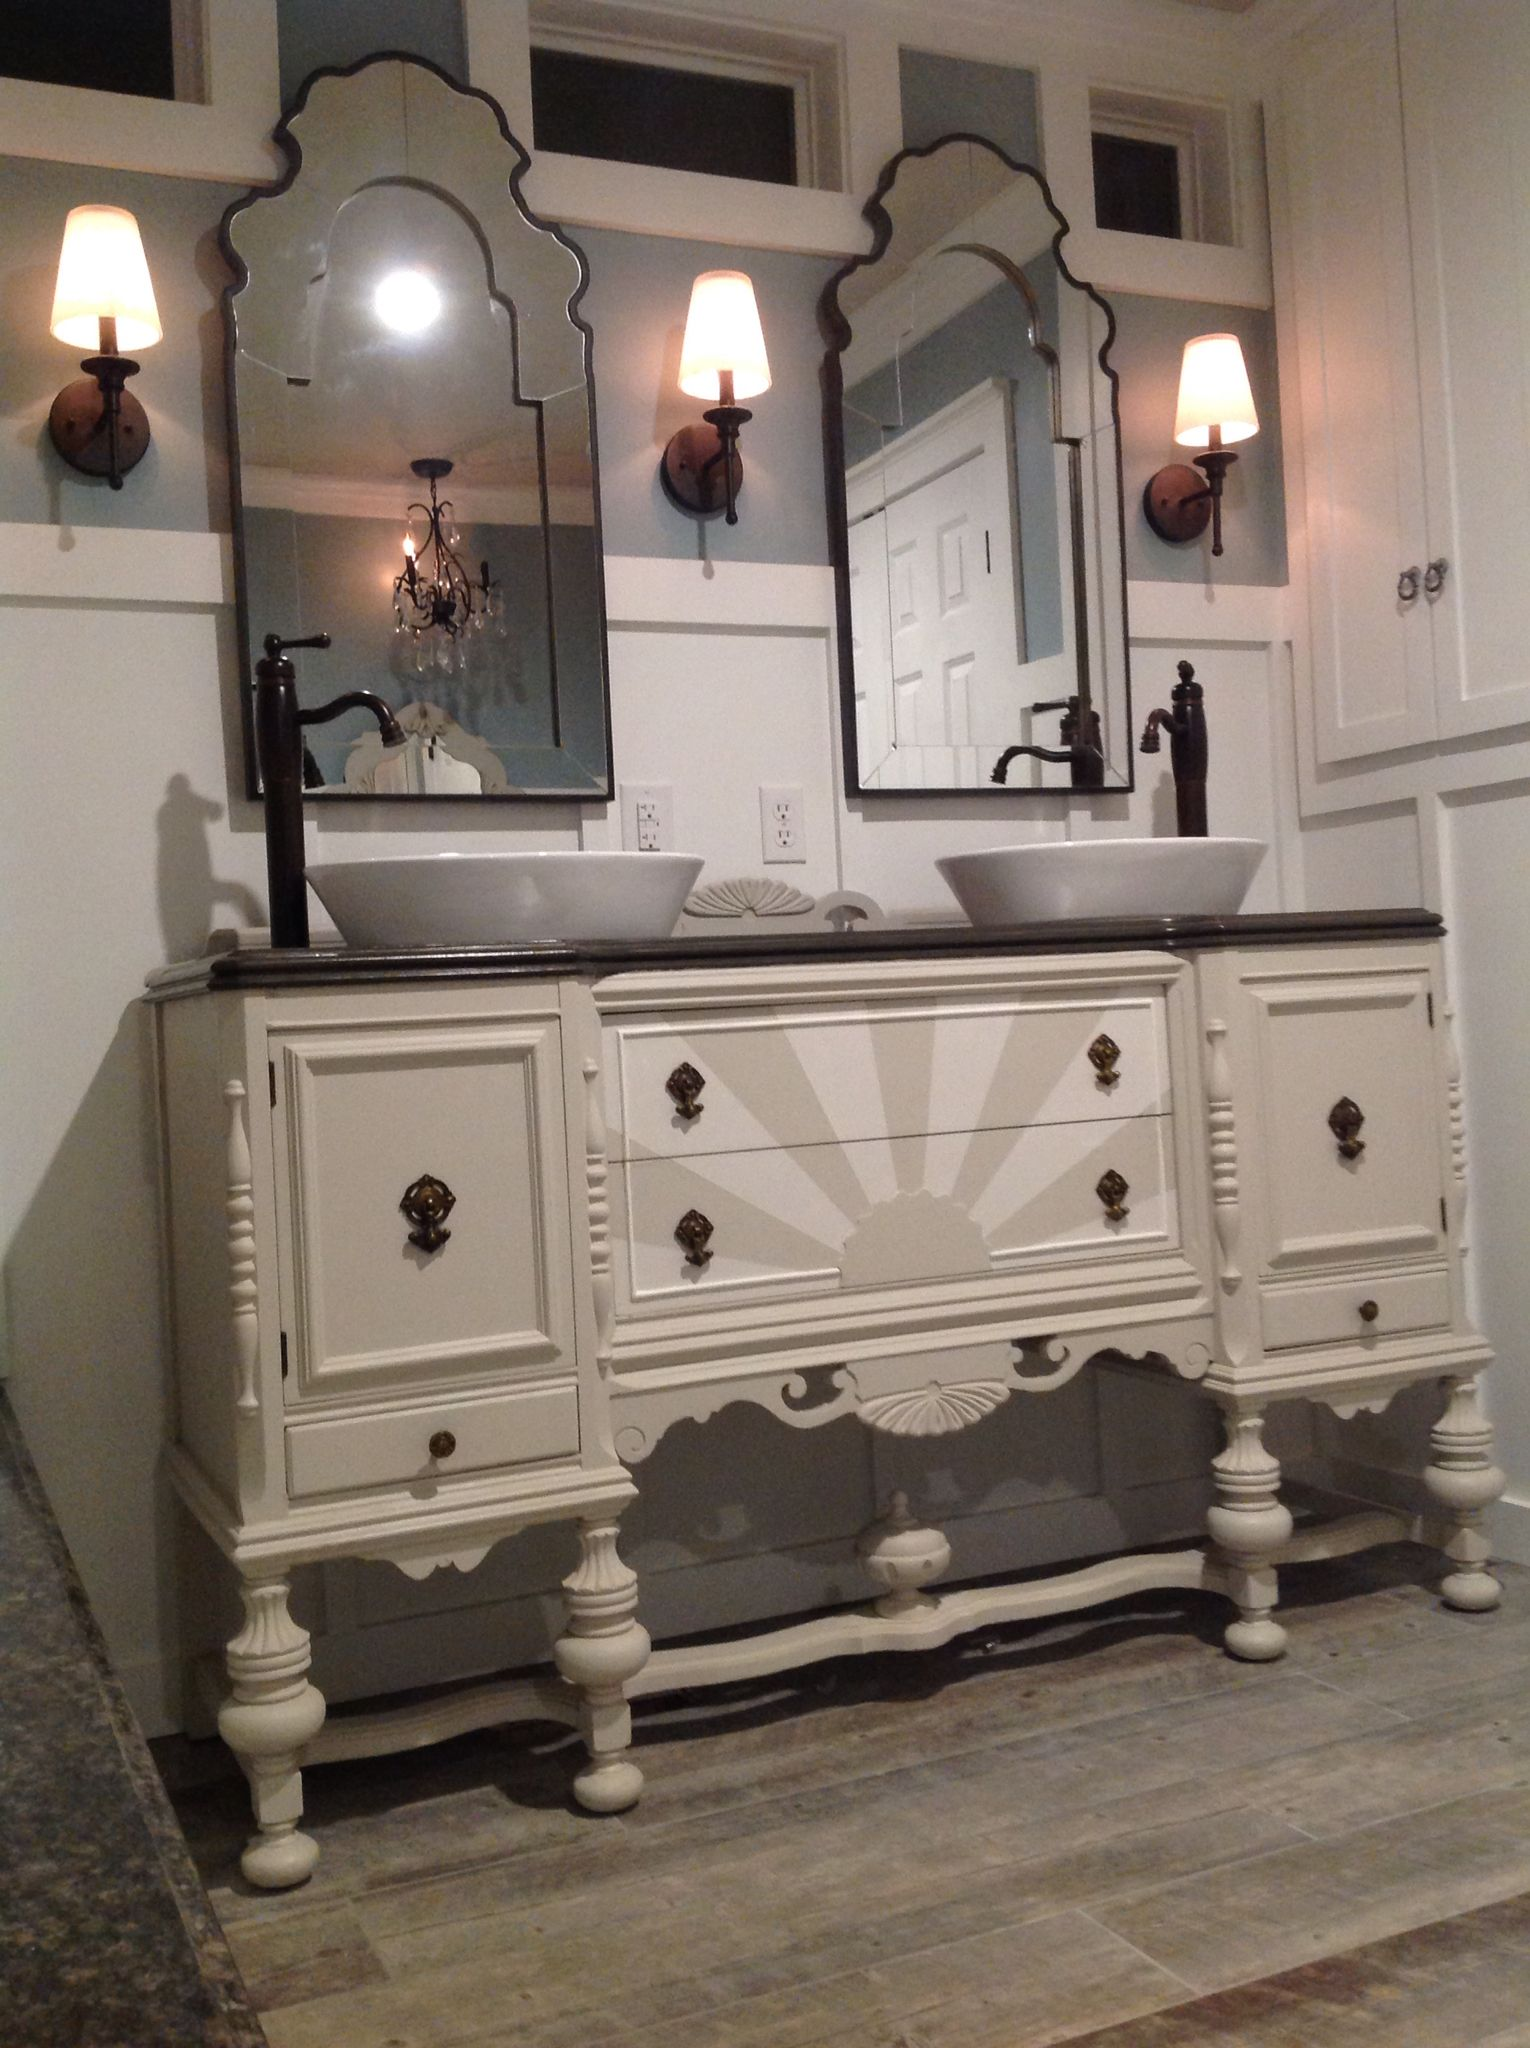 Our antique sideboard buffet repurposed into a bathroom vanity by my